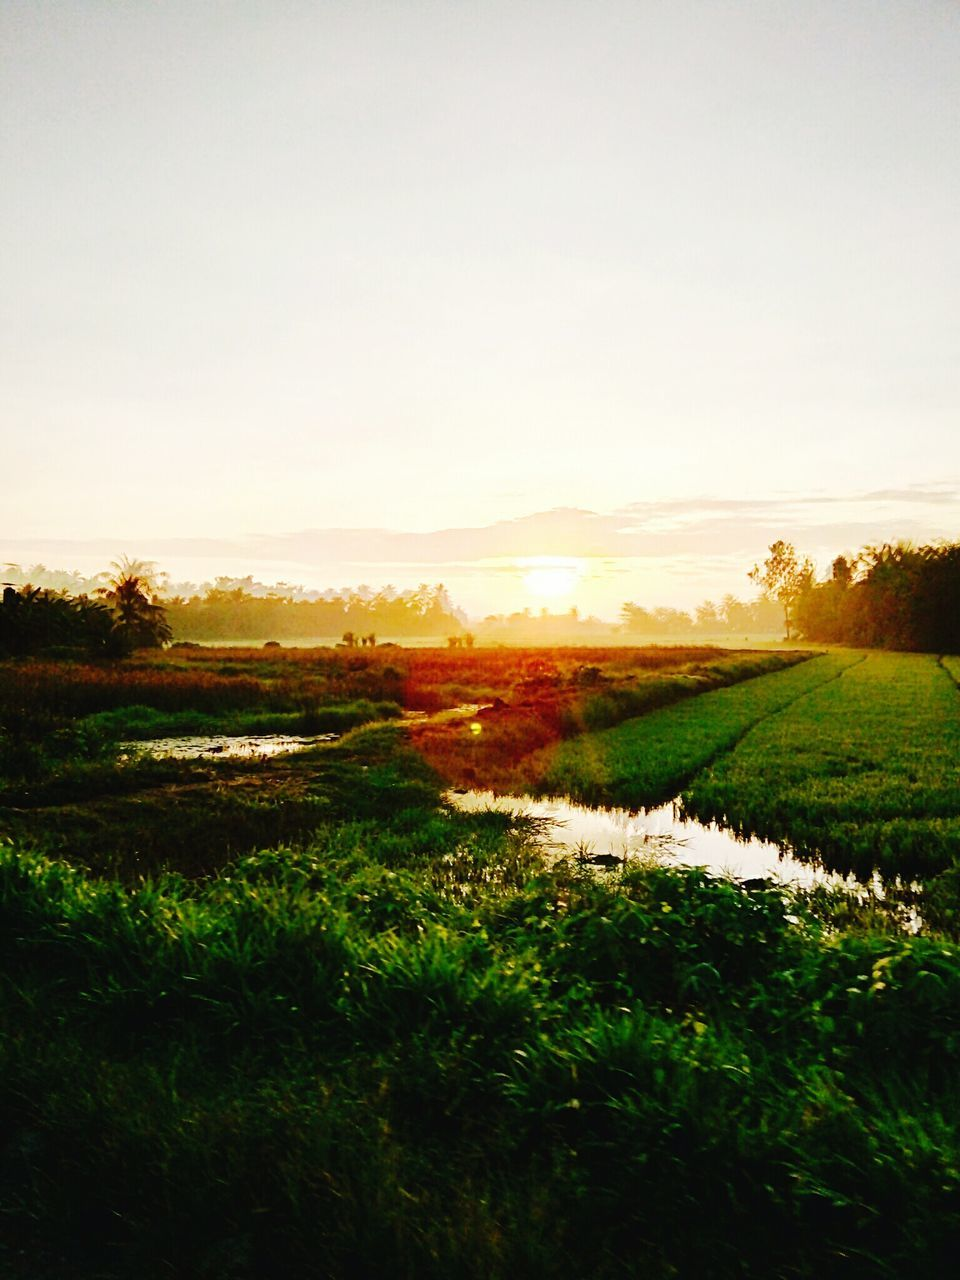 tranquil scene, tranquility, field, grass, nature, scenics, beauty in nature, landscape, rural scene, sunset, agriculture, no people, outdoors, growth, green color, tree, sky, day, water, rice paddy